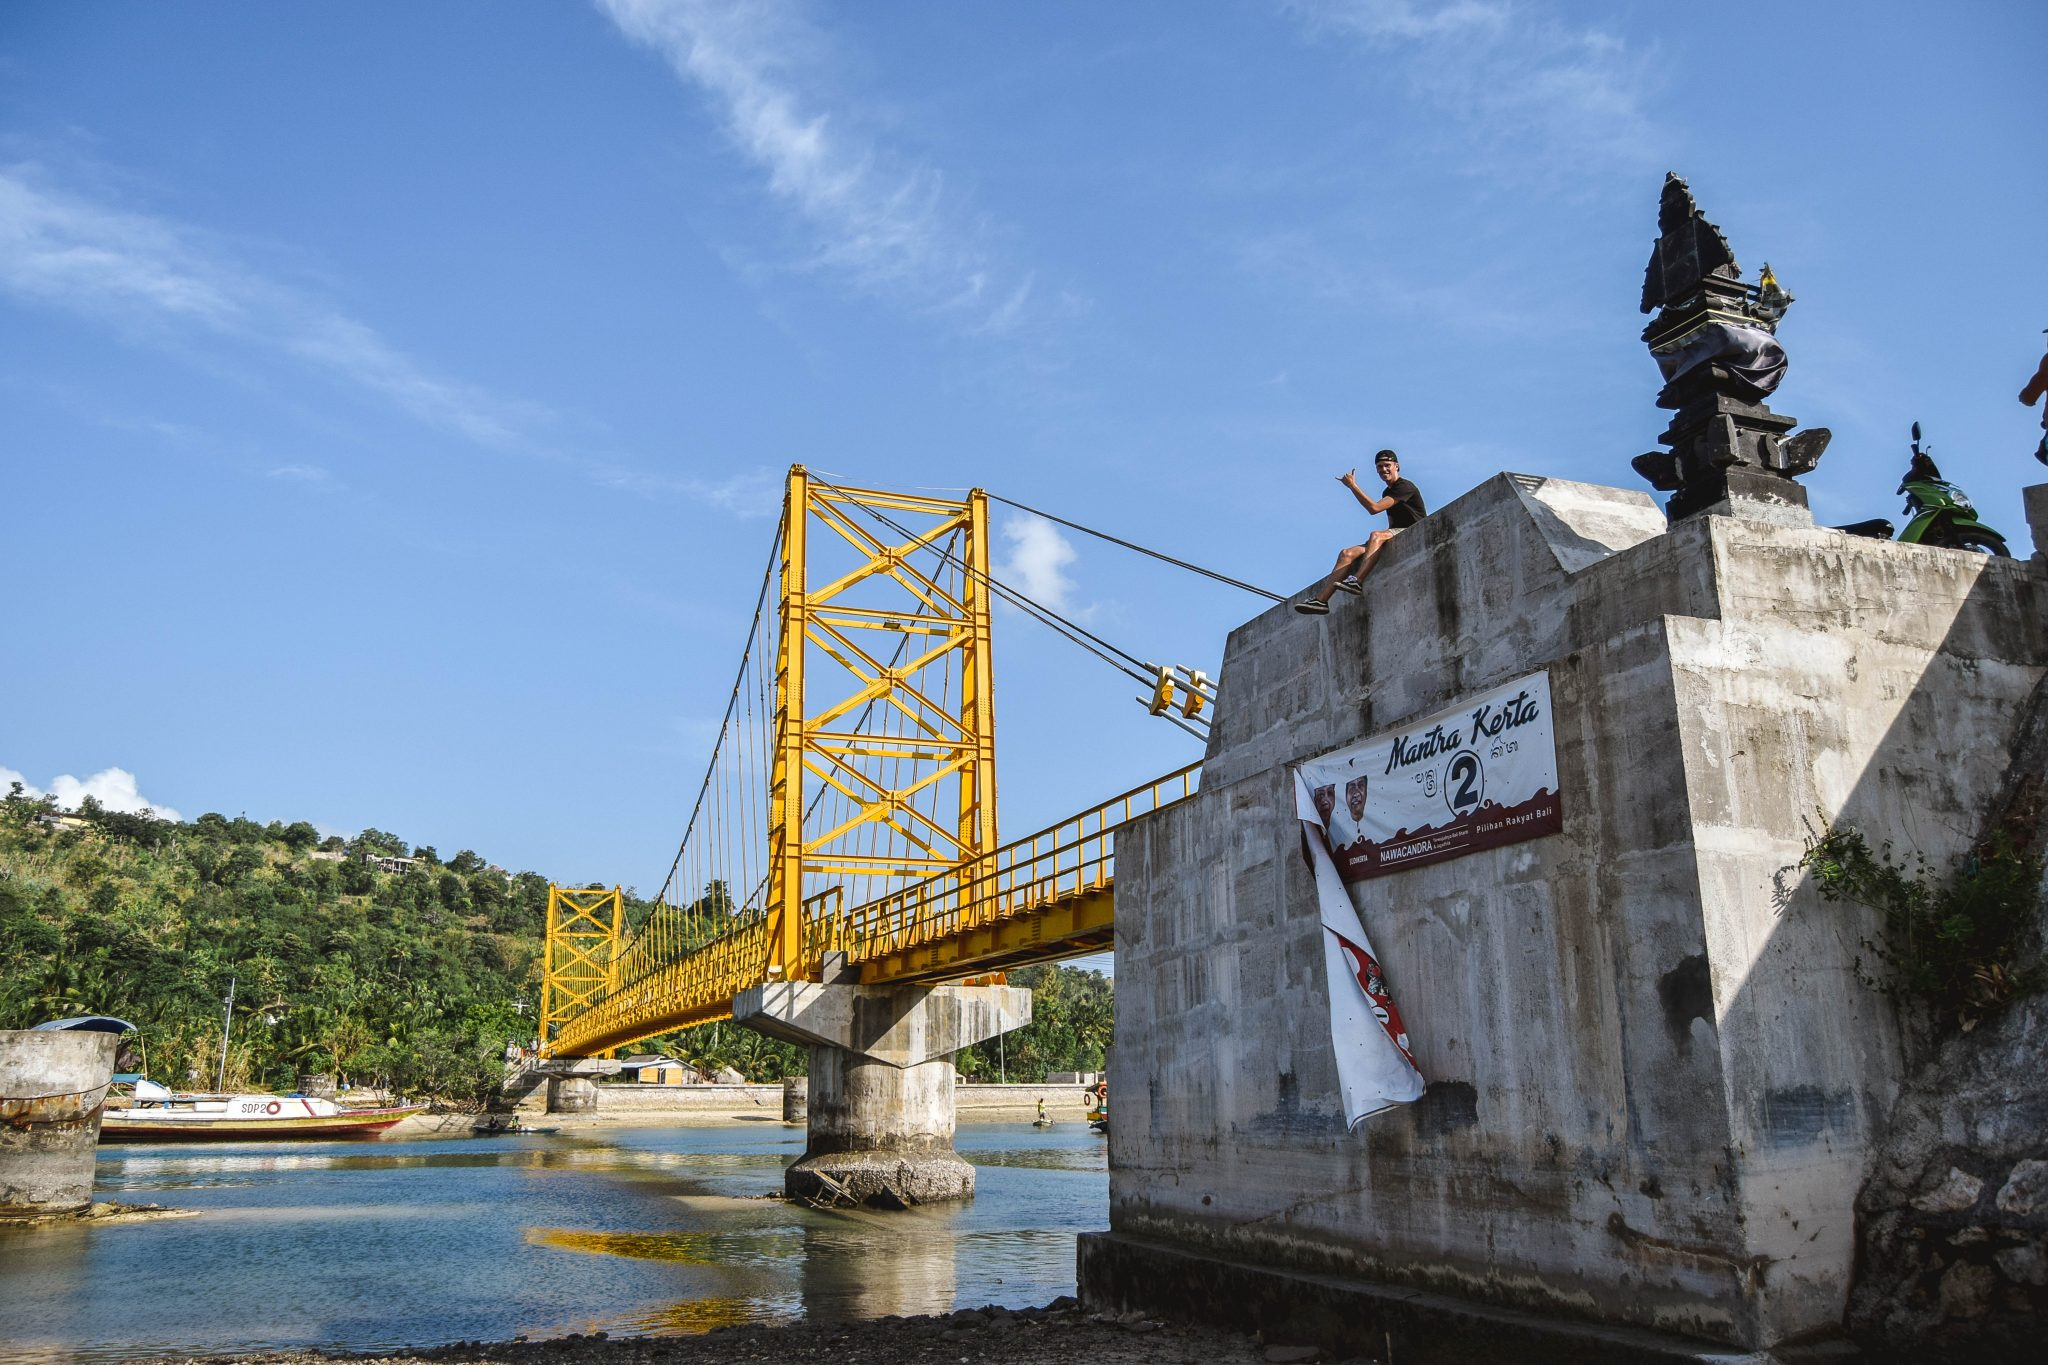 Yellow Bridge Nusa Lembongan To Ceningan Yellow Bridge Lembongan Bali Things To Do in Nusa Lembongan - Nusa Islands